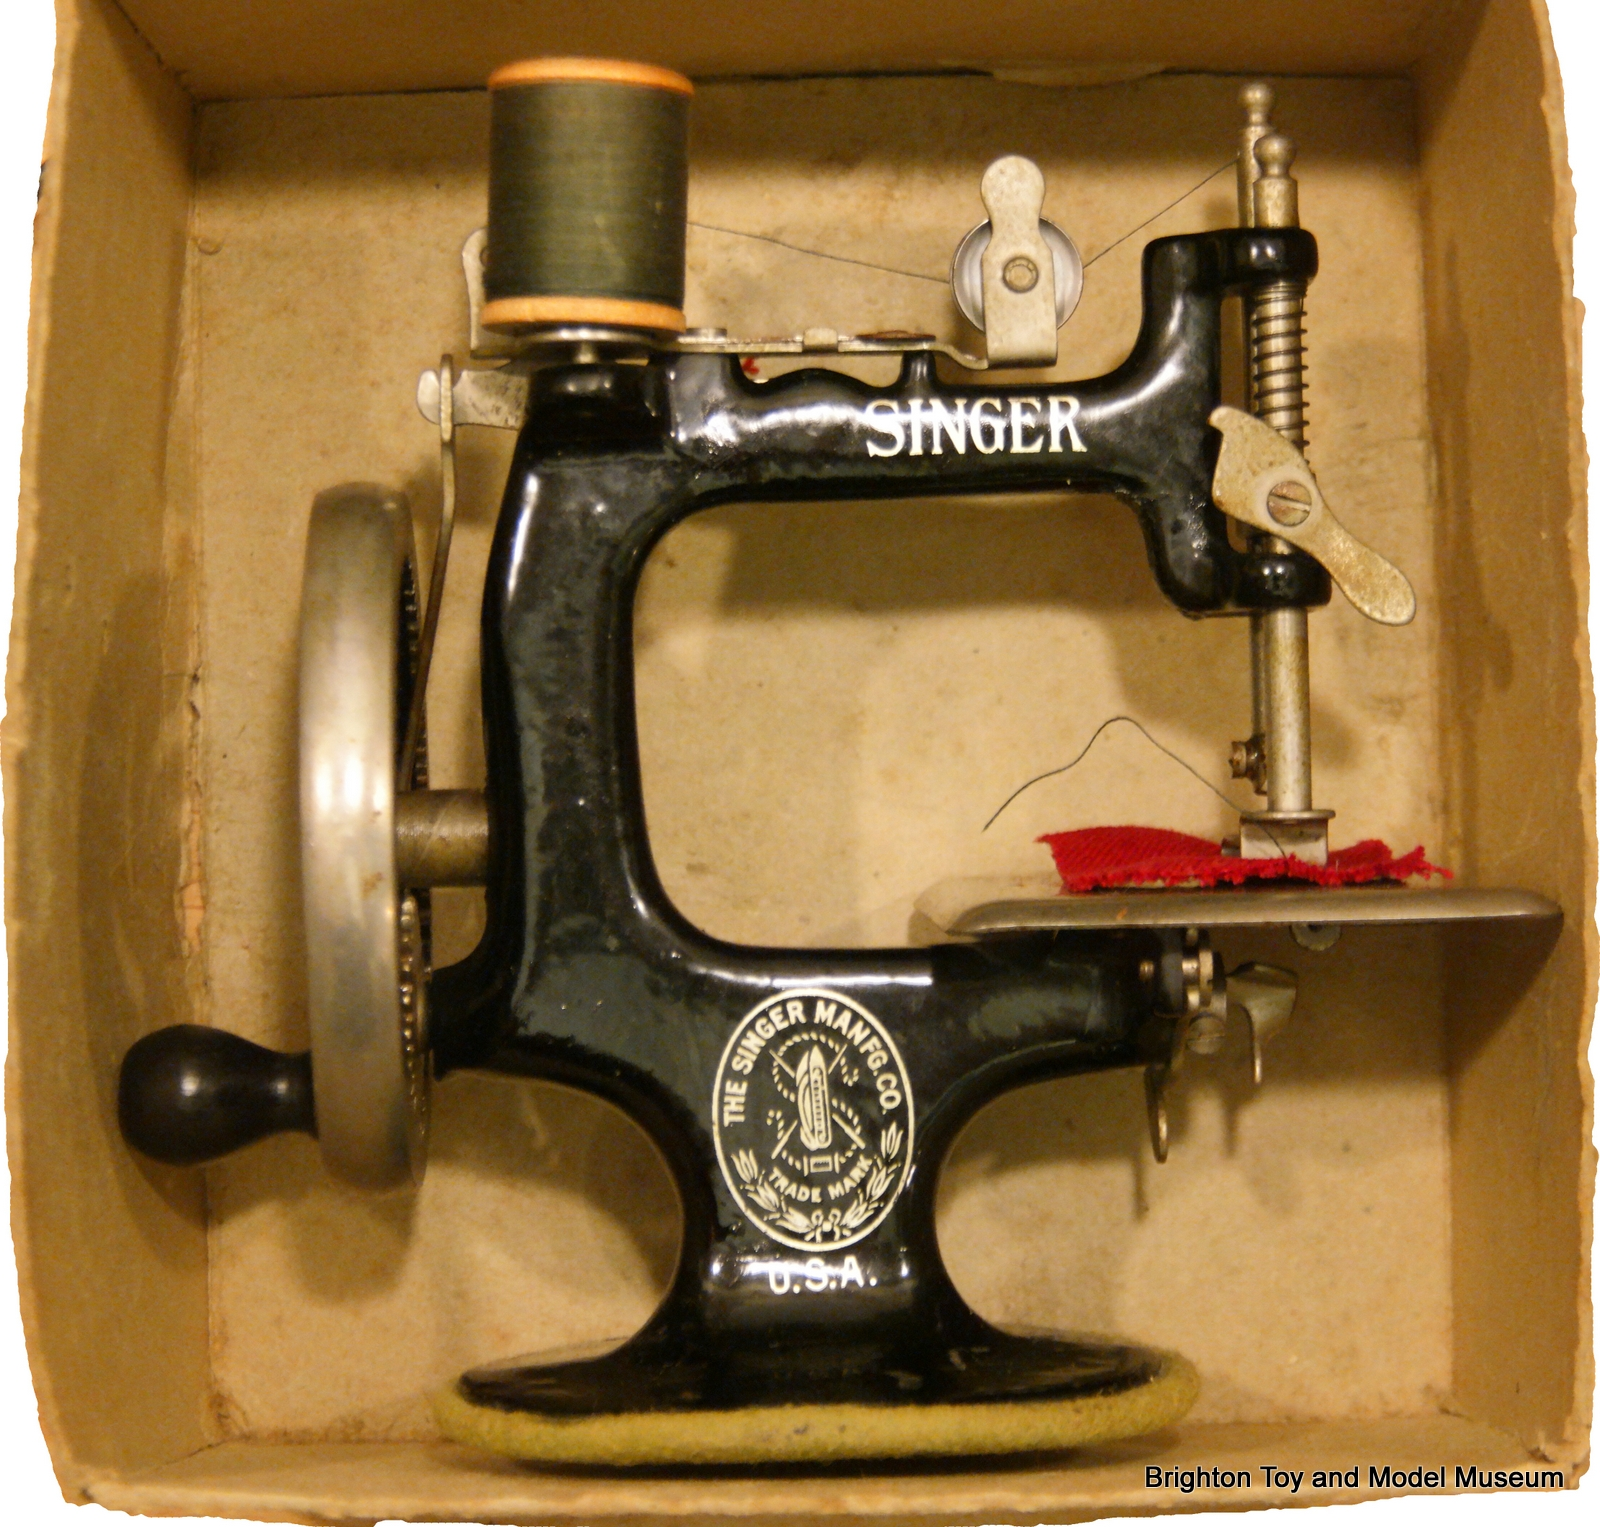 Singer Model 20 sewing machine - The Brighton Toy and Model